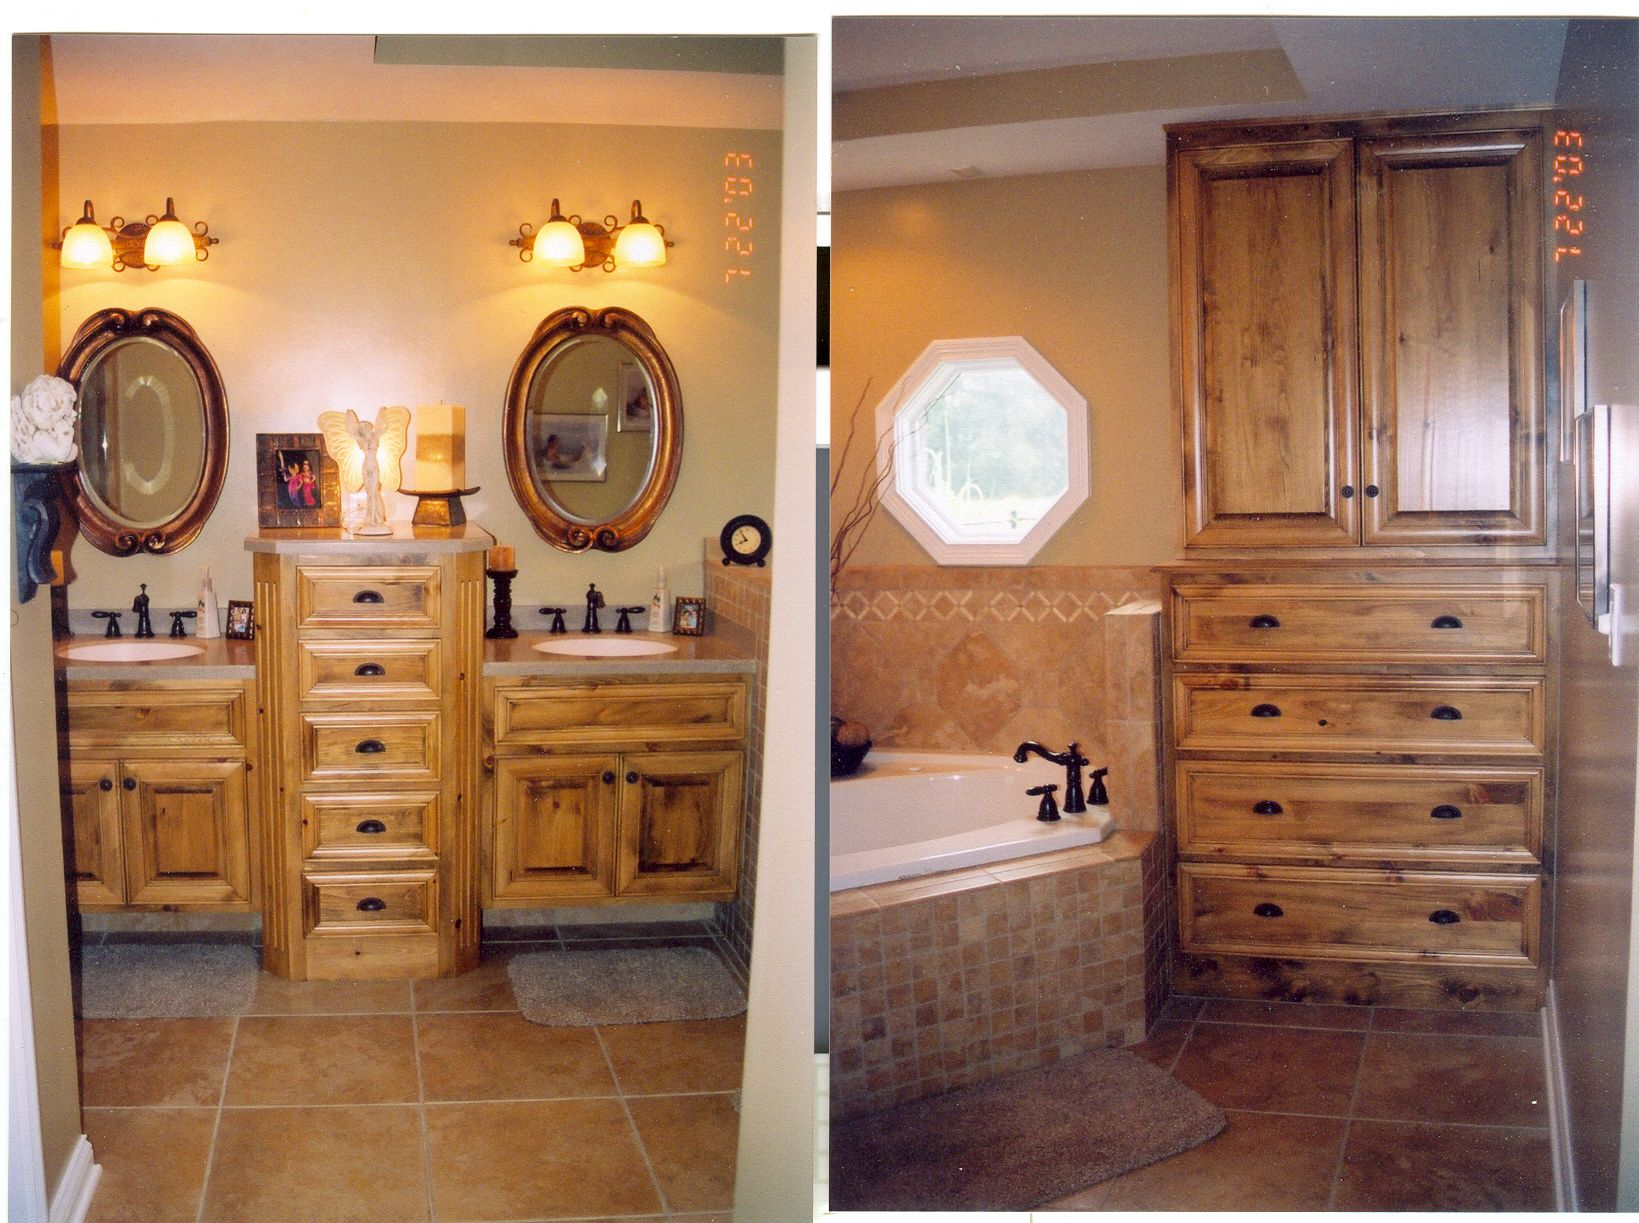 Knotty Pine Bath To Match Master Bedroom Furniture Western